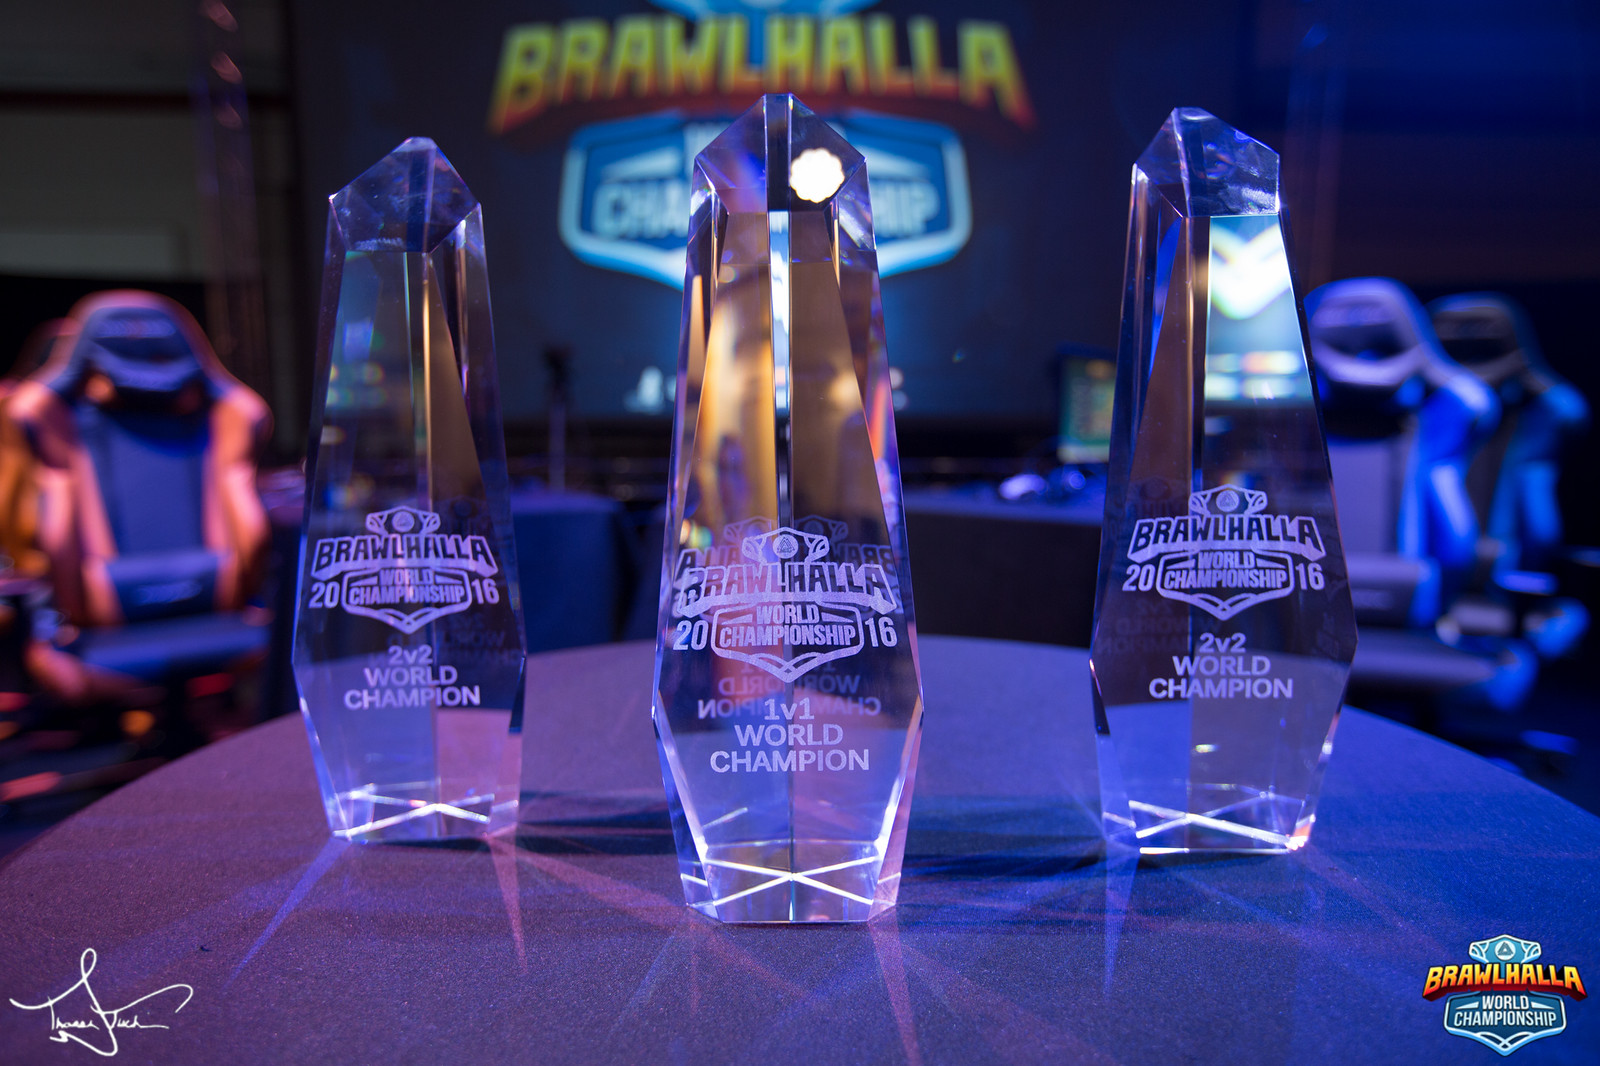 Trophies from the 2016 Brawlhalla World Championship.